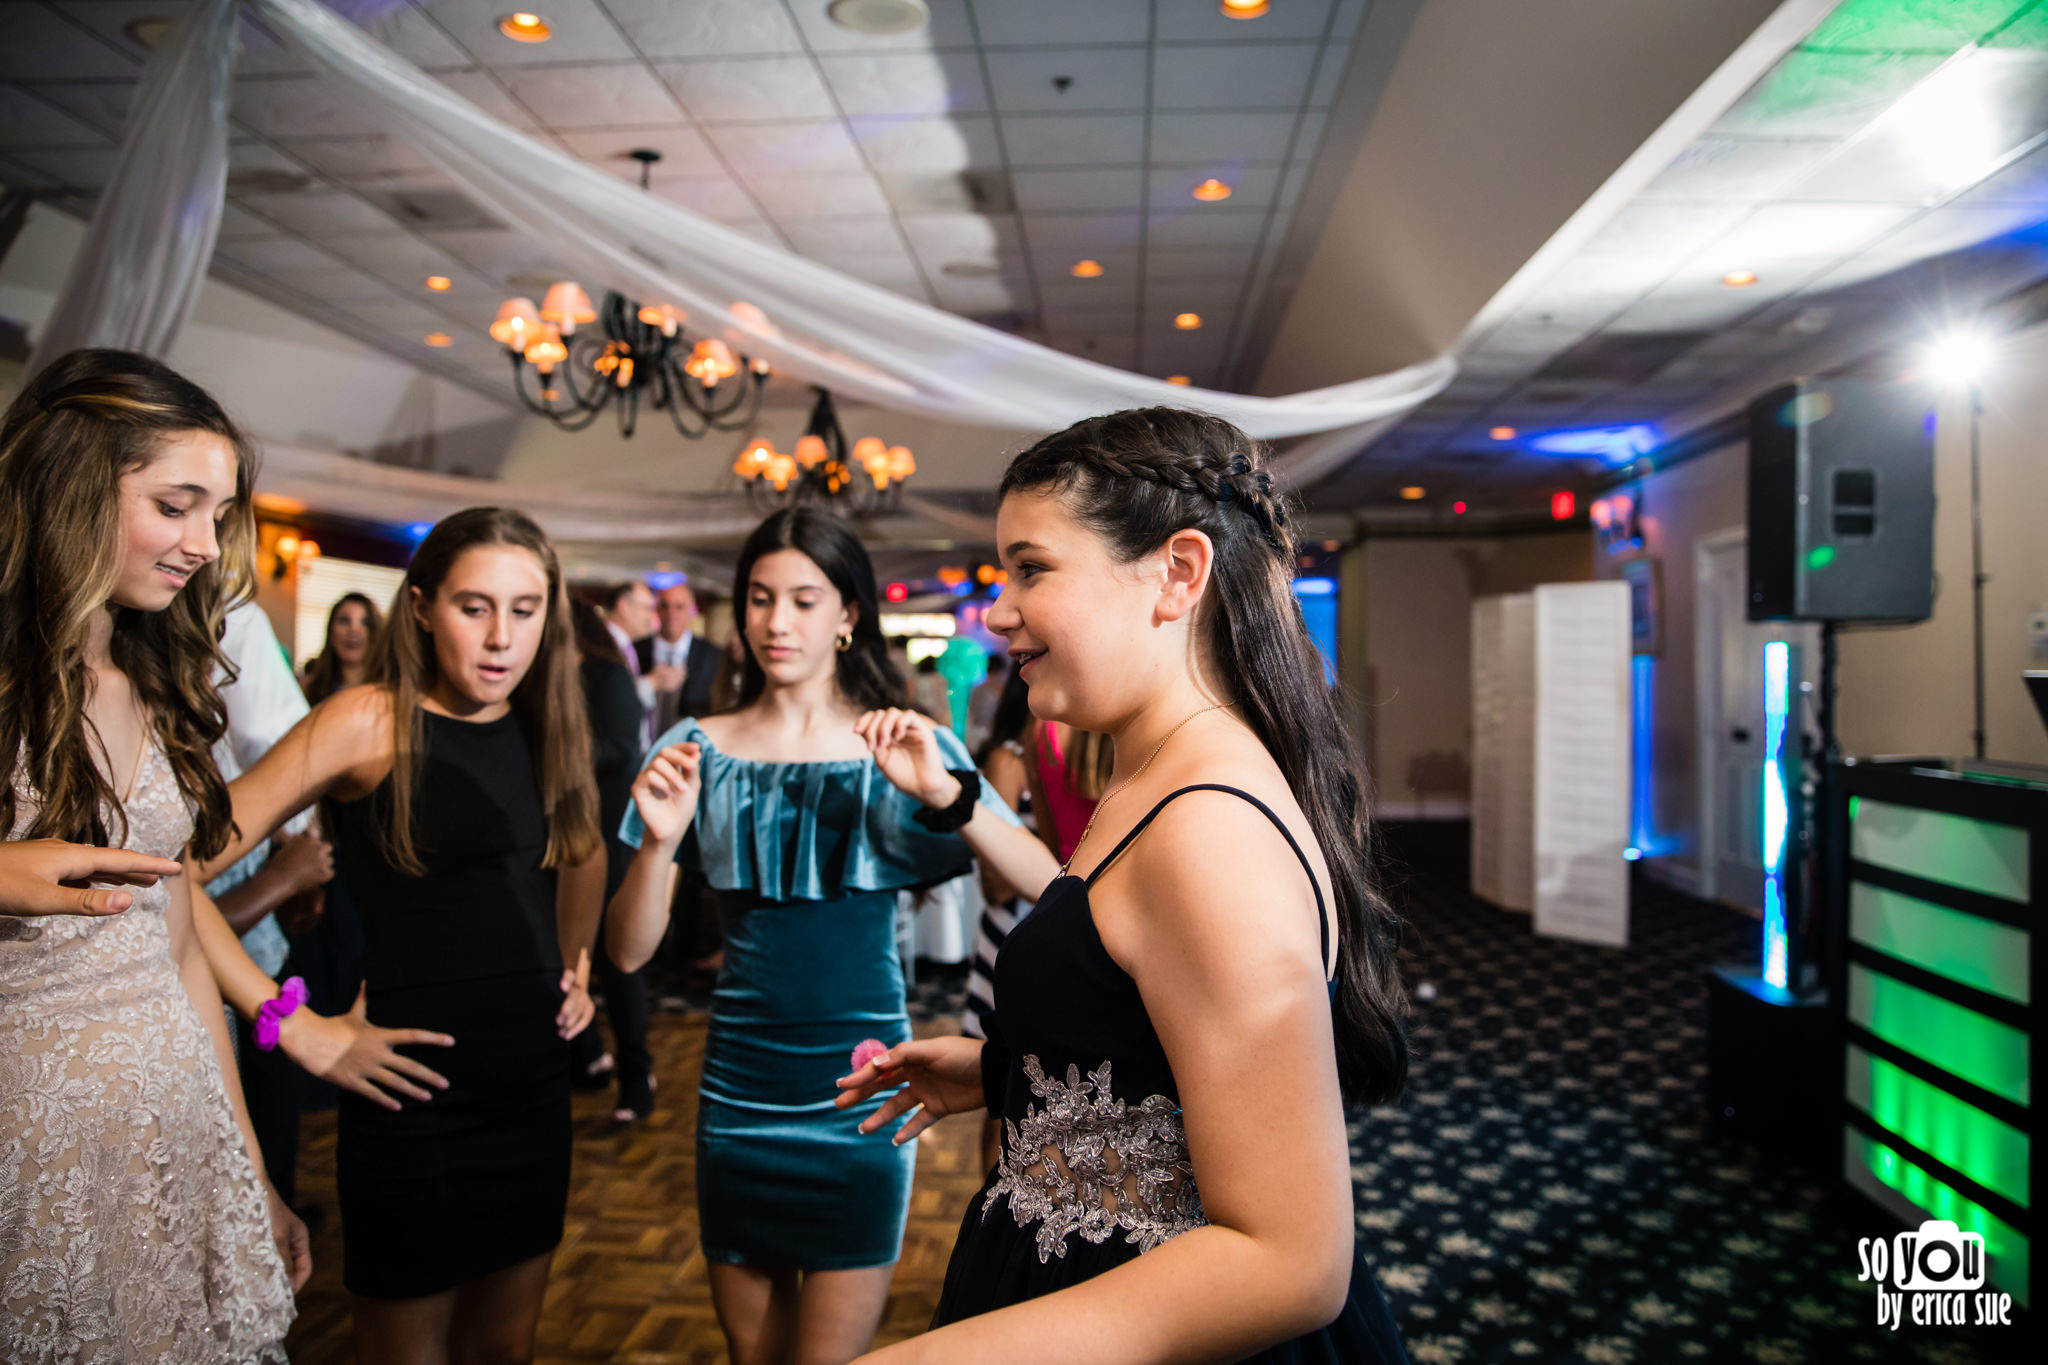 so-you-by-erica-sue-bnai-mitzvah-photographer-delray-beach-golf-club-fl-3687.jpg